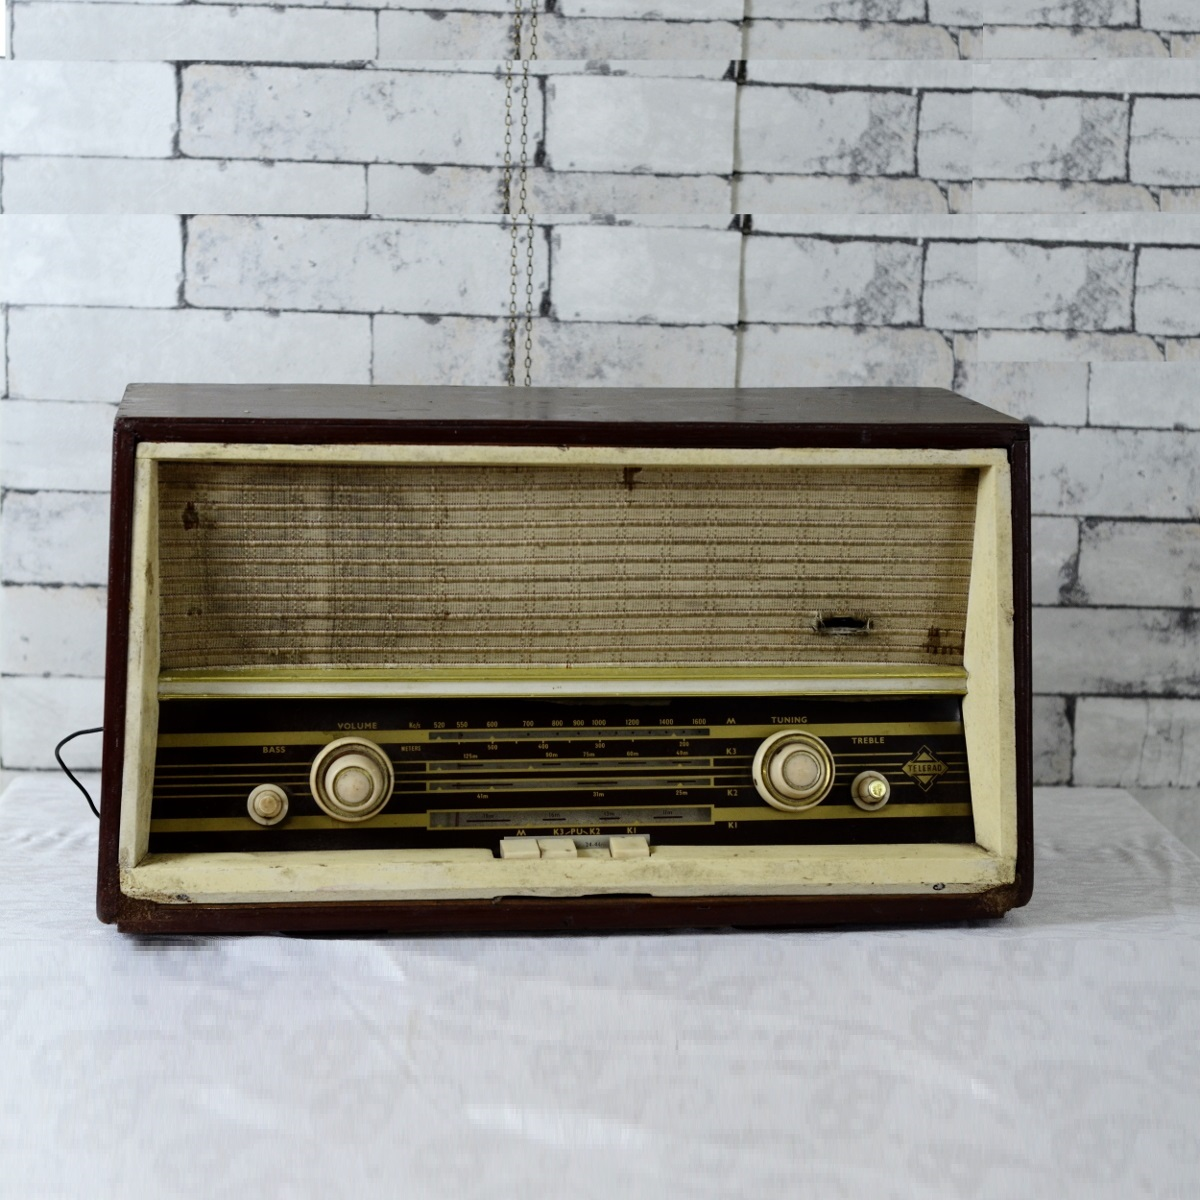 Vintage Telerad Antique Valve Radio Collectible Antikcart